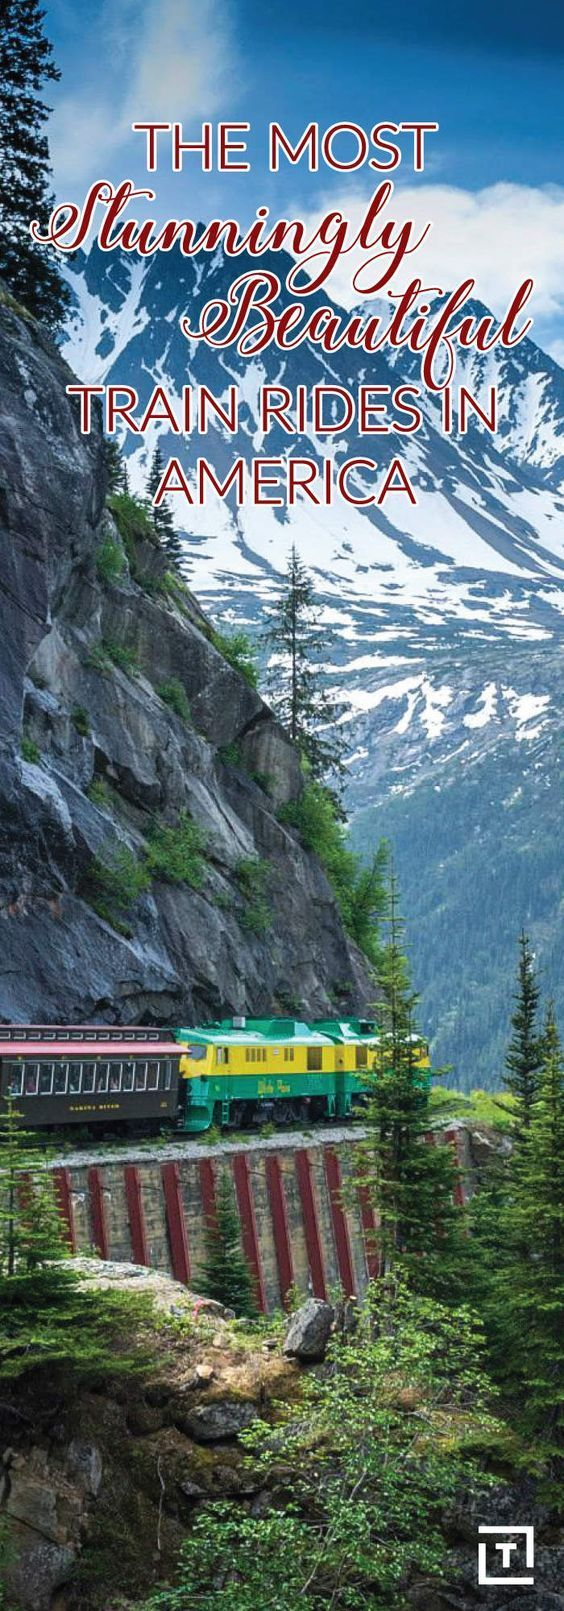 , Die schönsten Zugfahrten in Amerika – The Most Stunningly Beautiful Train Rides in America    Die Reise ist wichtiger als das Ziel. Das Reisen mit de…, Travel Couple, Travel Couple